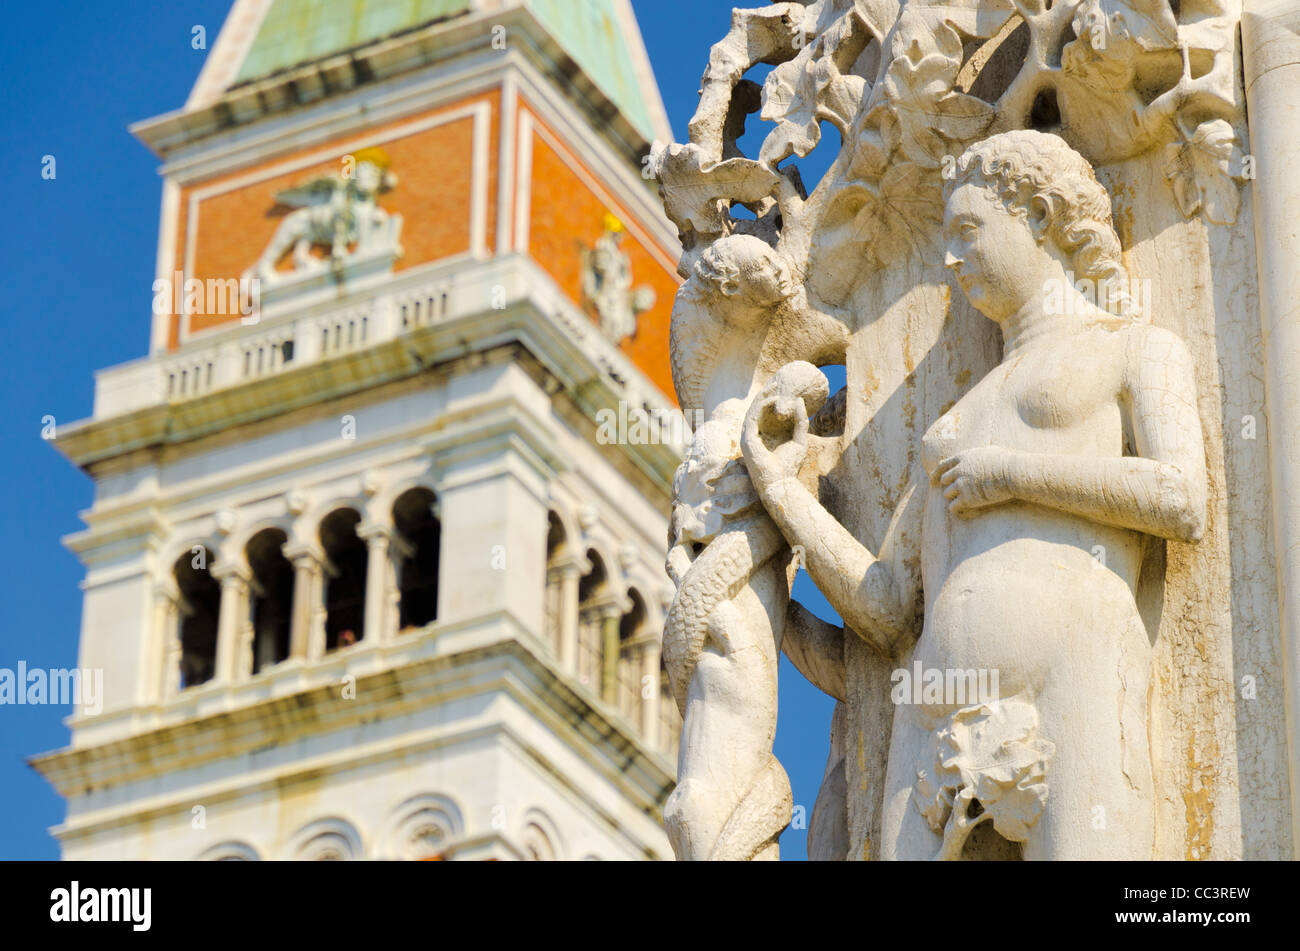 Italy, Veneto, Venice, The Campanile (Bell Tower) and carving on corner of Doges' Palace - Stock Image